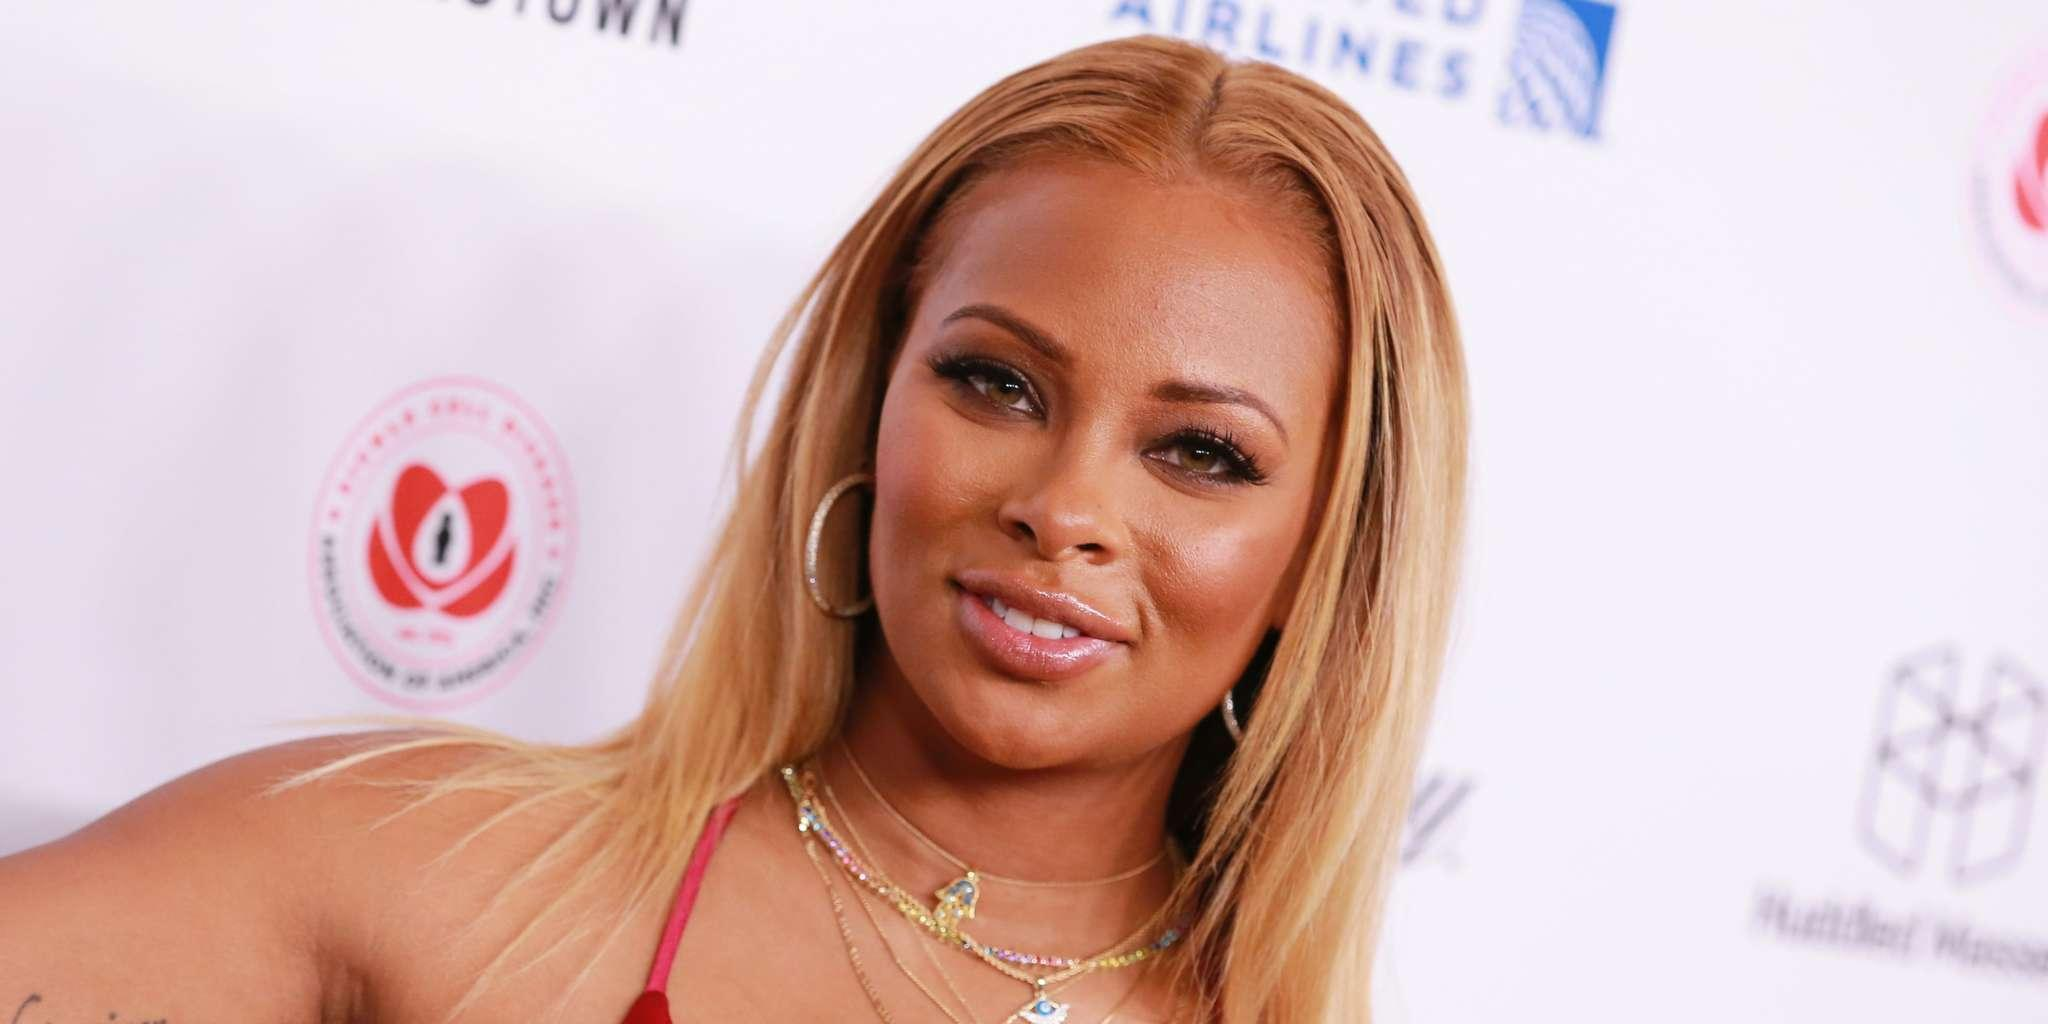 Eva Marcille Celebrates Her Mother And Fans Love To See The Sweet Photos She Shared